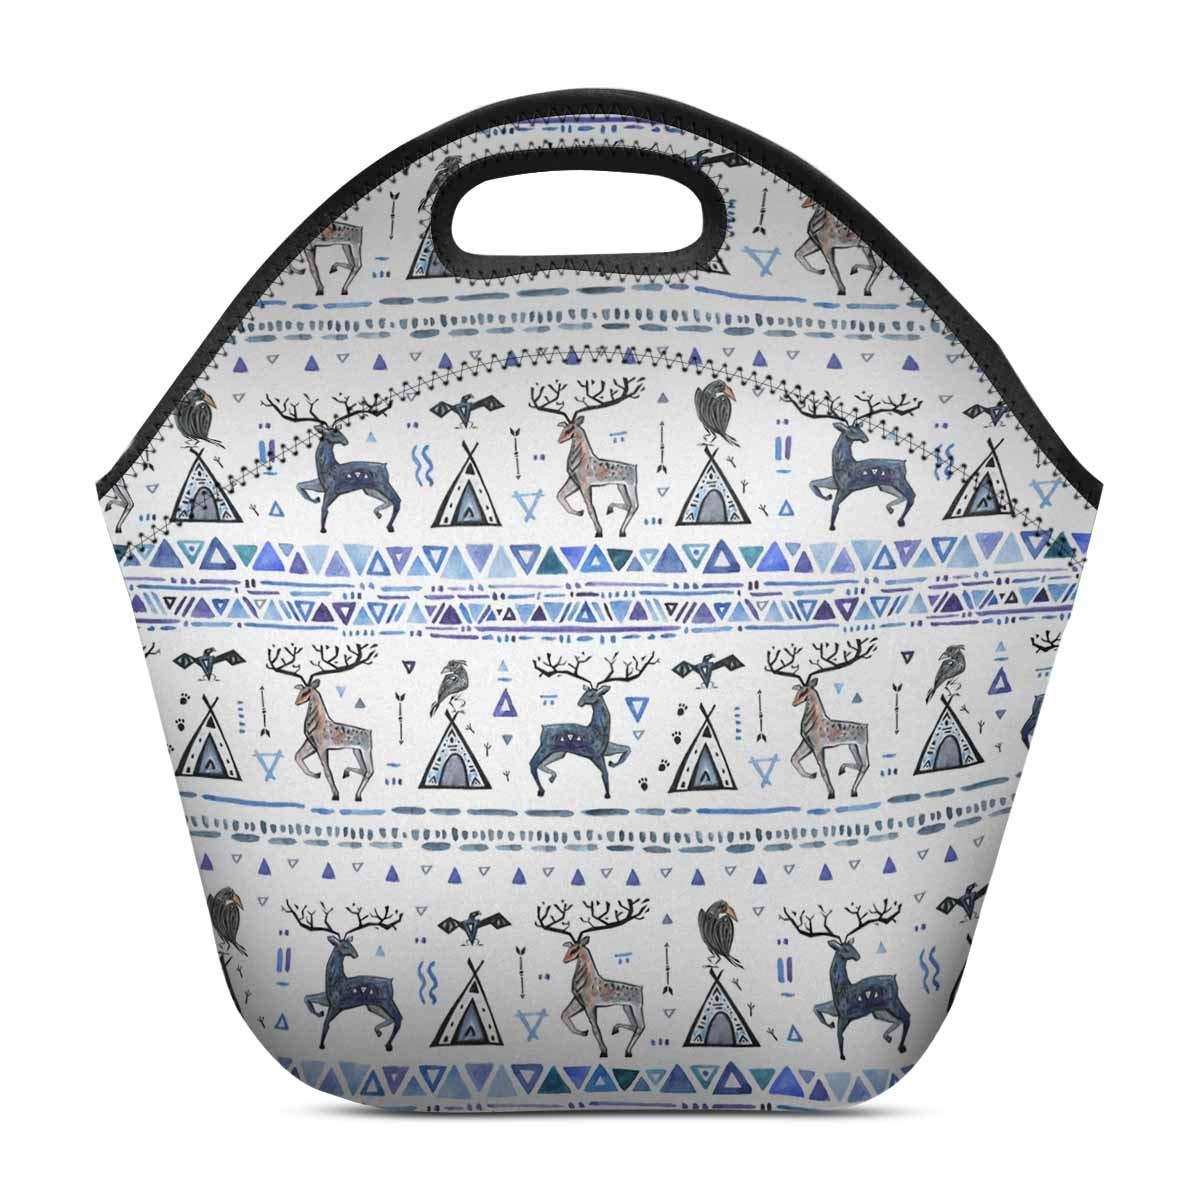 InterestPrint Neoprene Lunch Bag Animals Dream Catcher Insulated Lunchbox Handbag